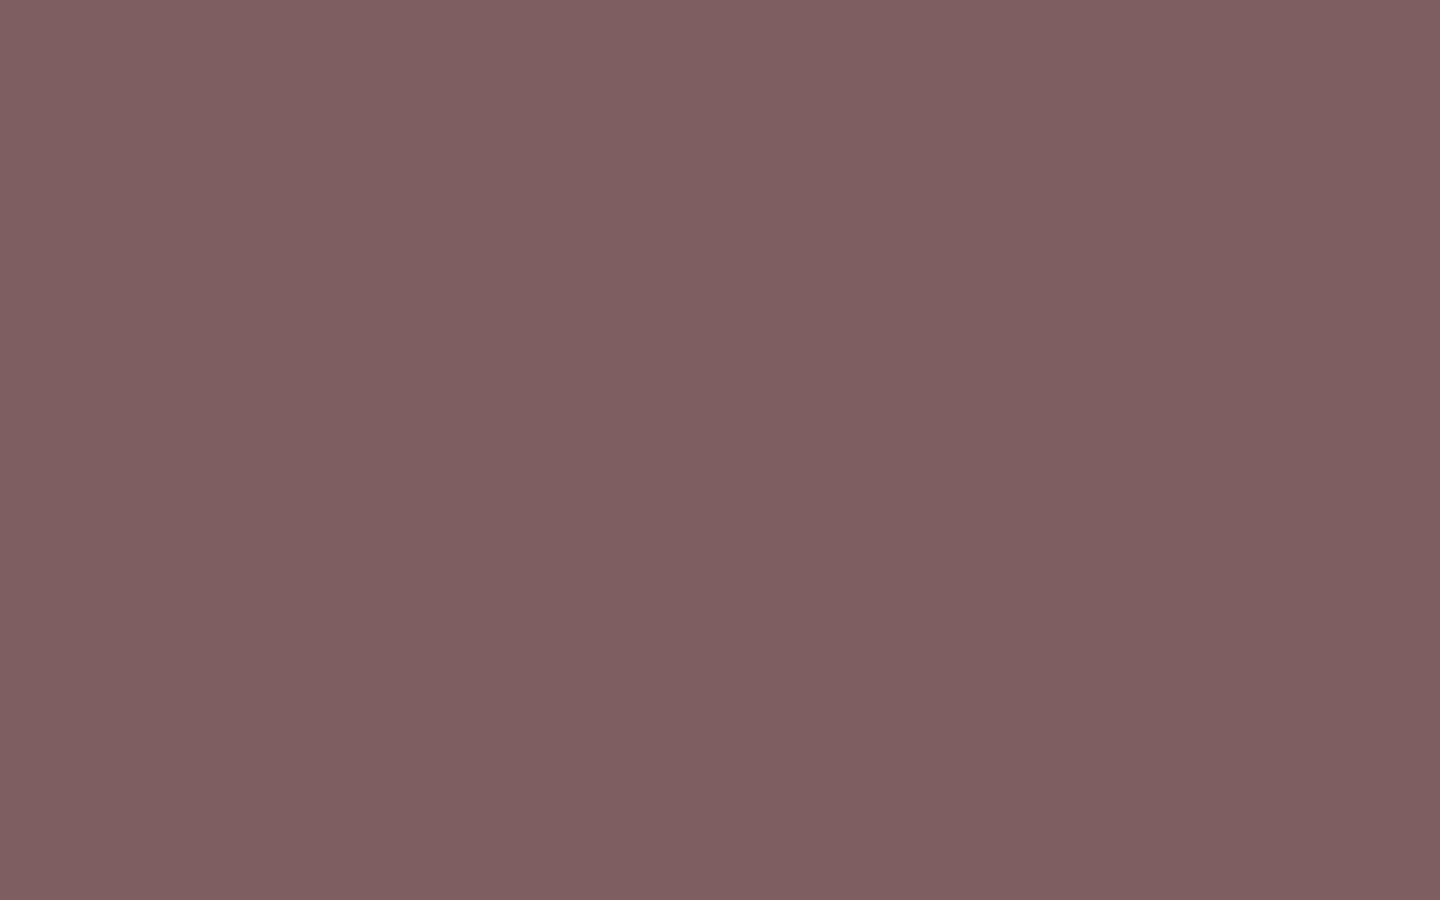 1440x900 Deep Taupe Solid Color Background